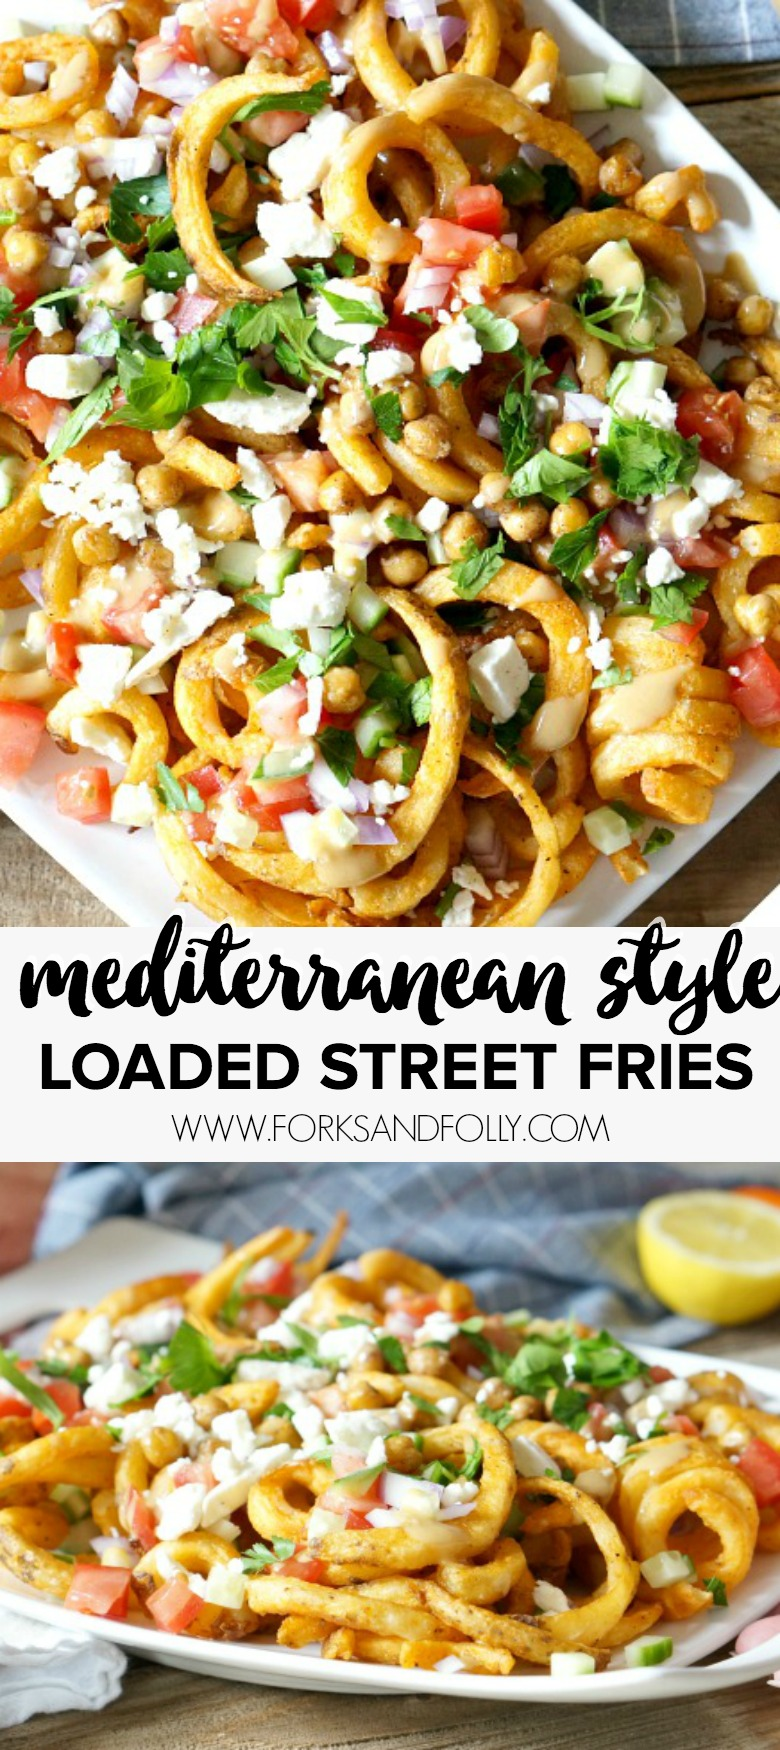 Mediterranean Style Loaded Street Fries are perfect for game-time snacking. Seasoned curly fries are loaded with fresh, crisp veggies, feta and a creamy tahini dressing Yum!